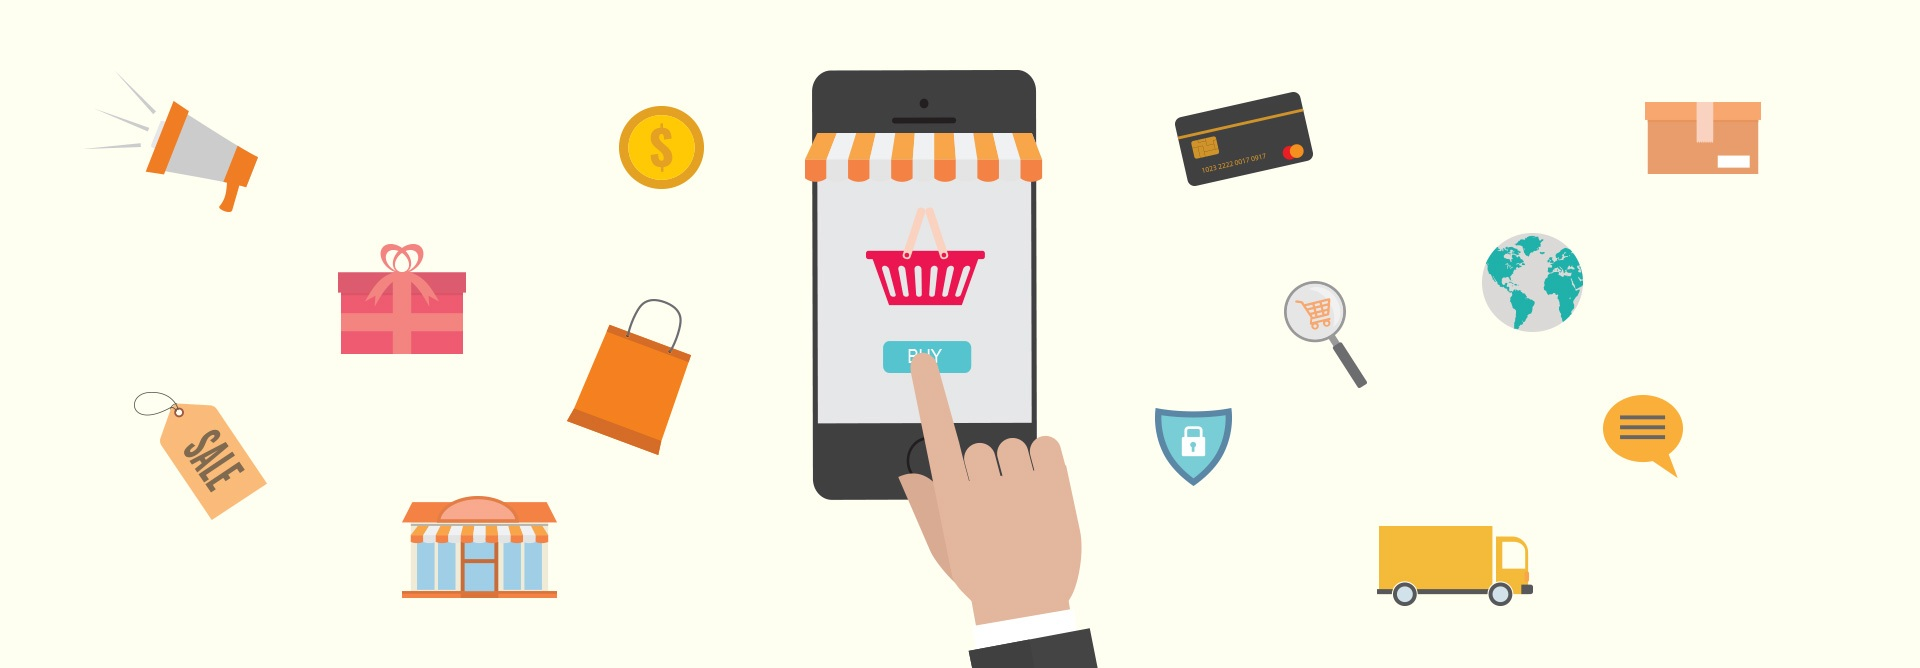 E-Commerce is Dead: How to Stop the Fact?